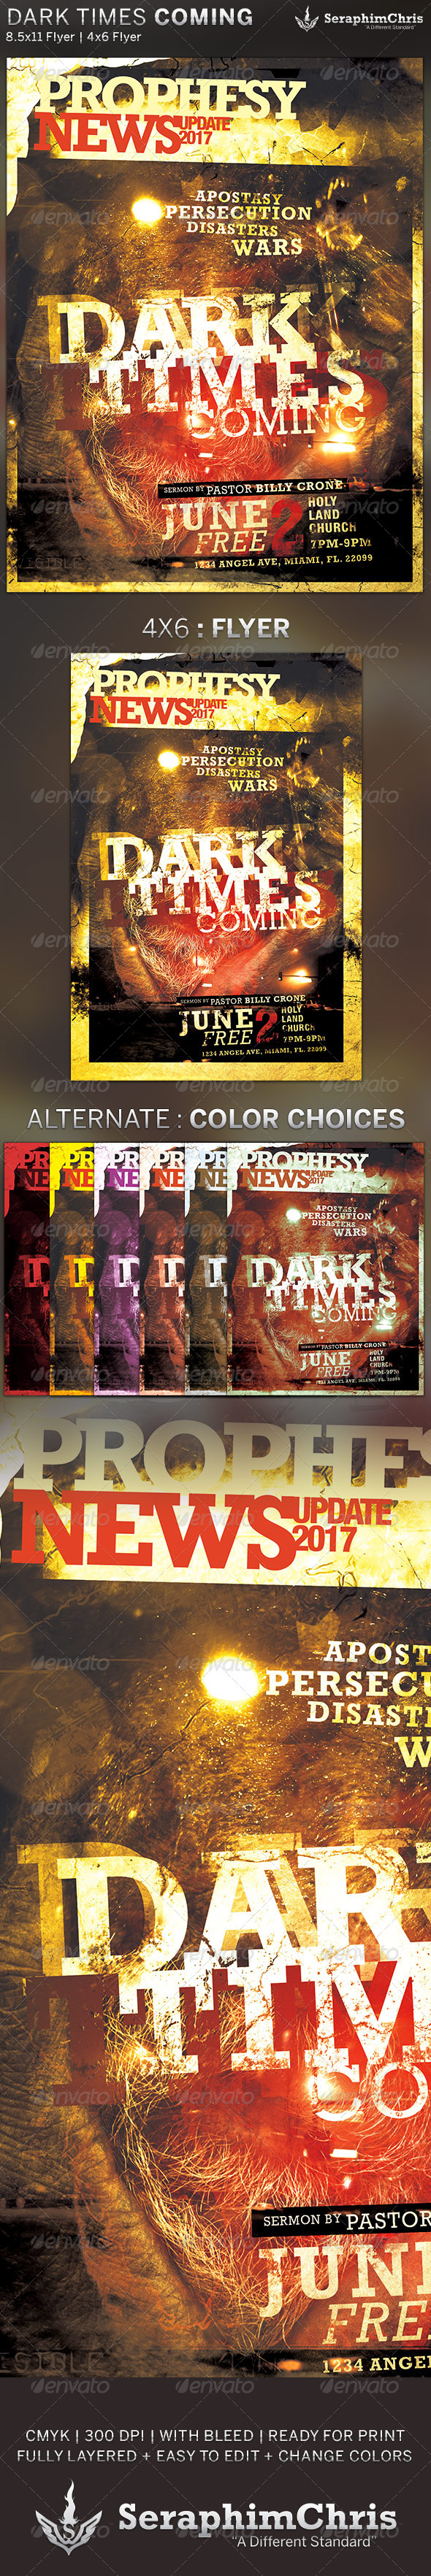 Dark Times Coming: Church Flyer Template - Church Flyers